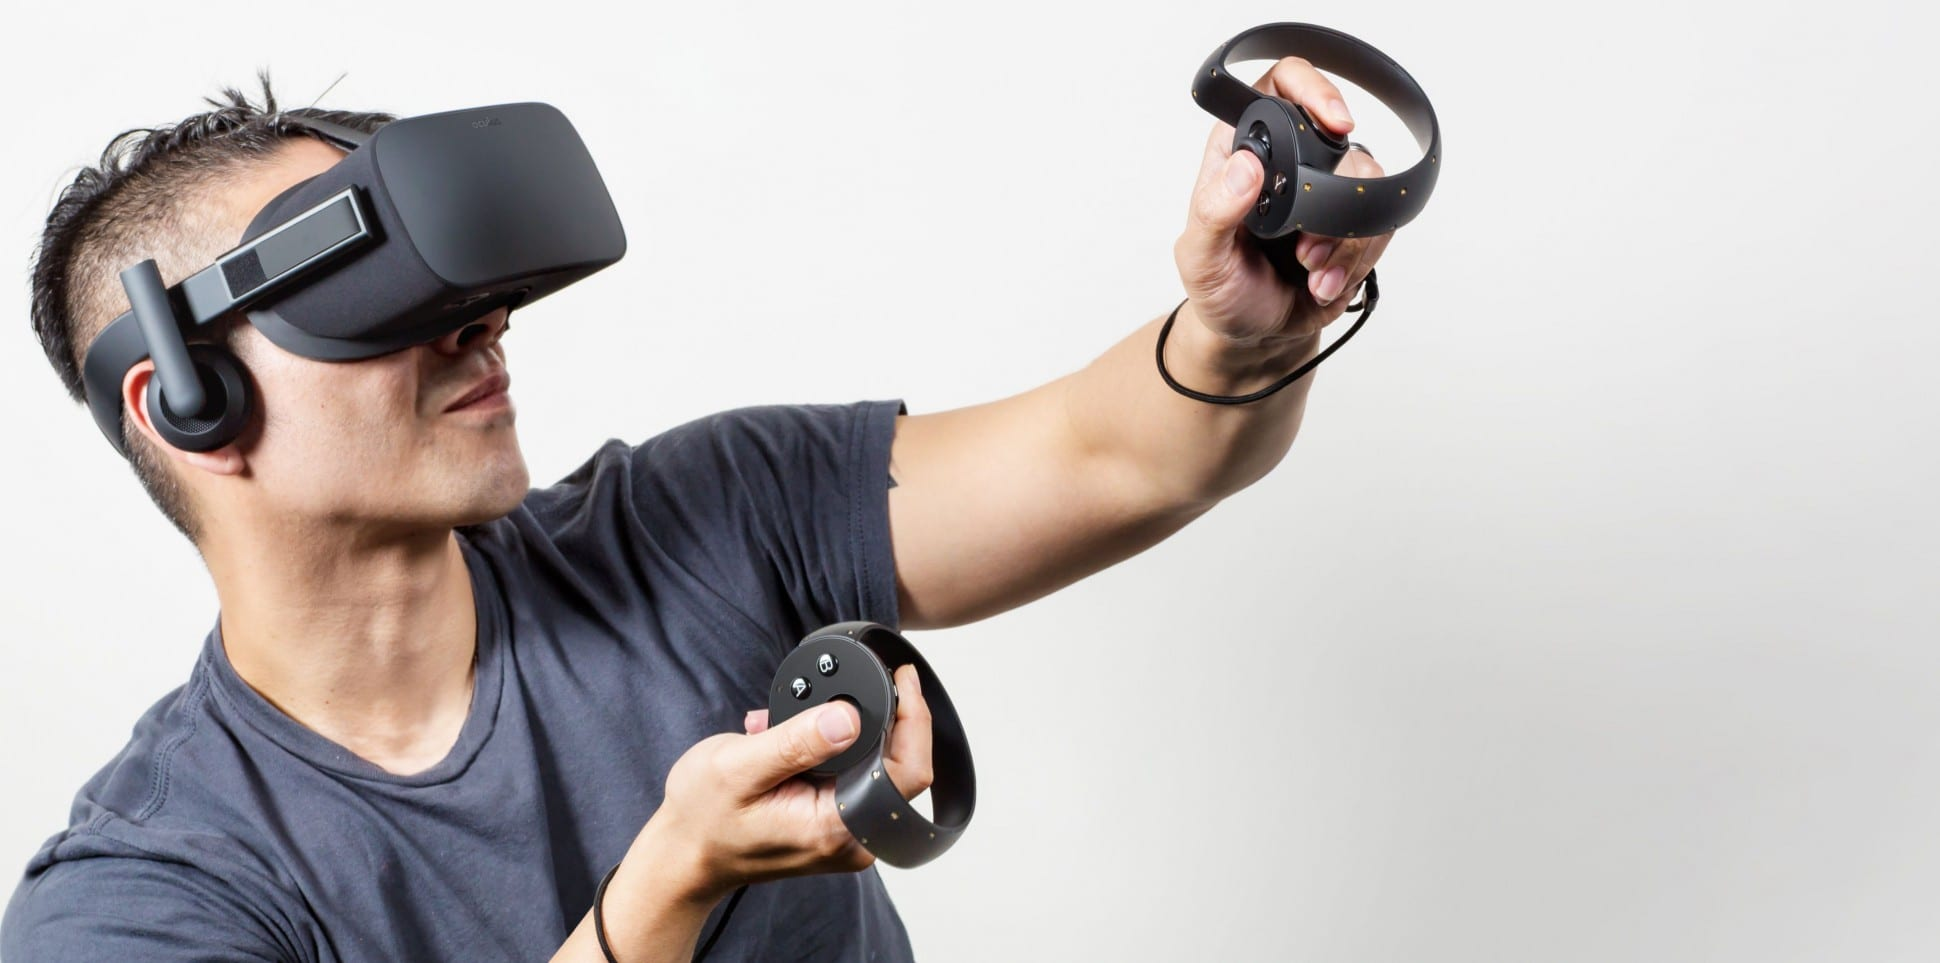 oculus-touch-controllers-1940x963